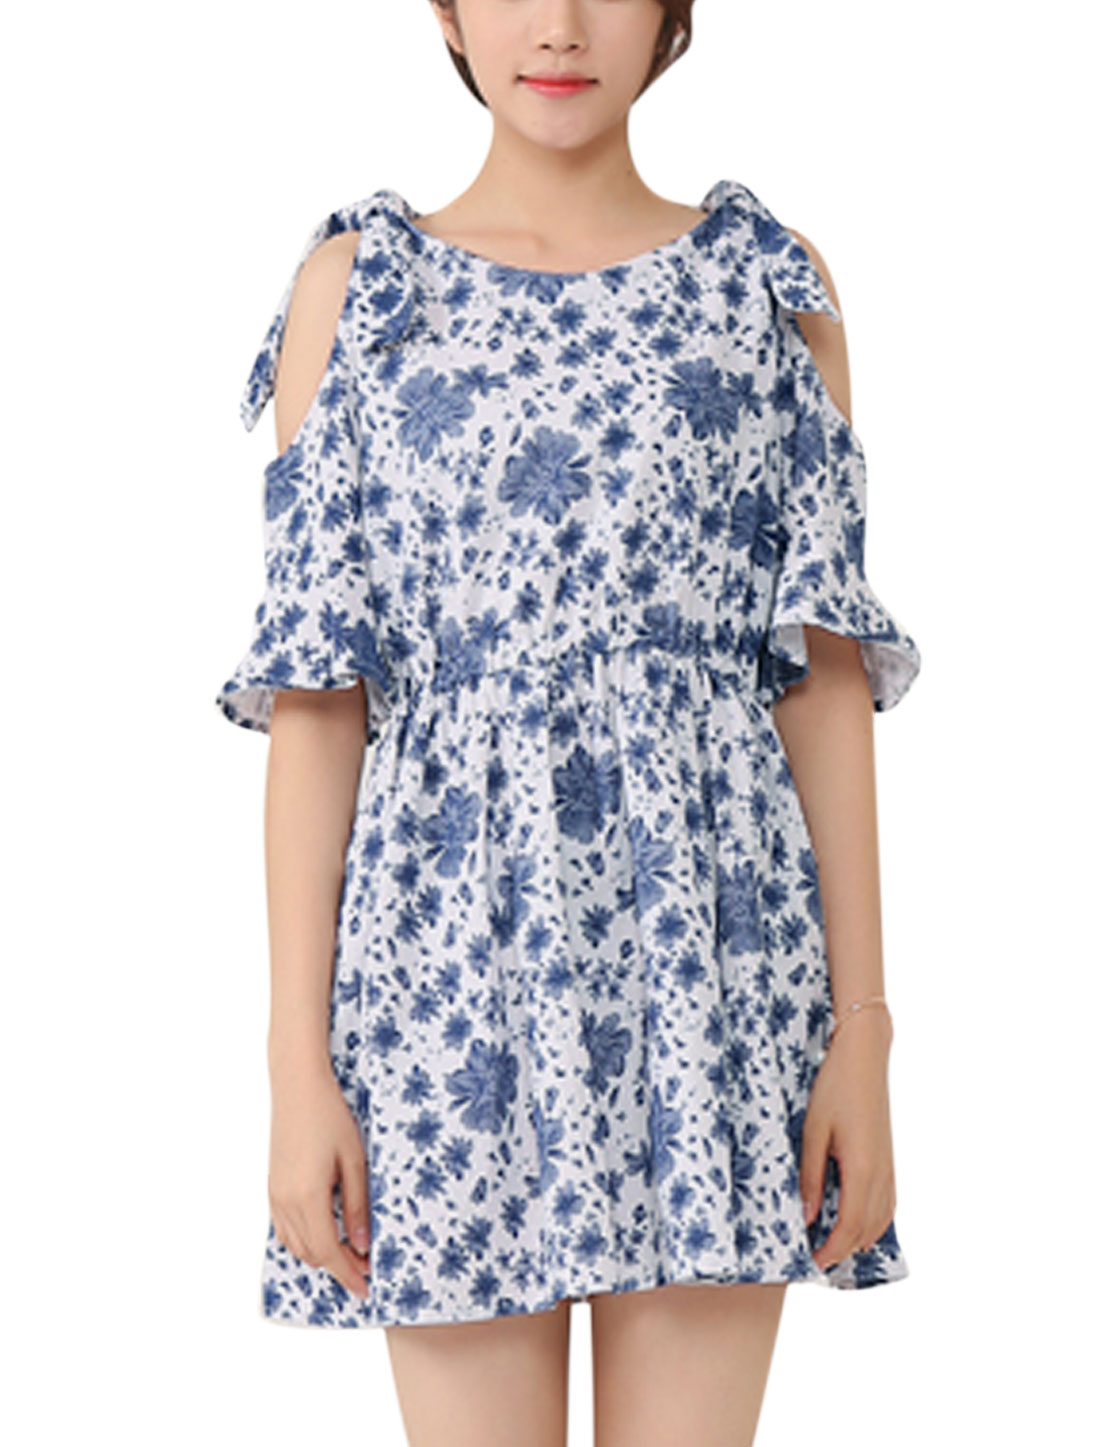 Lady Cold Shoulder Bell Sleeve Floral Pattern Elastic Waist Short Dress Navy Blue S